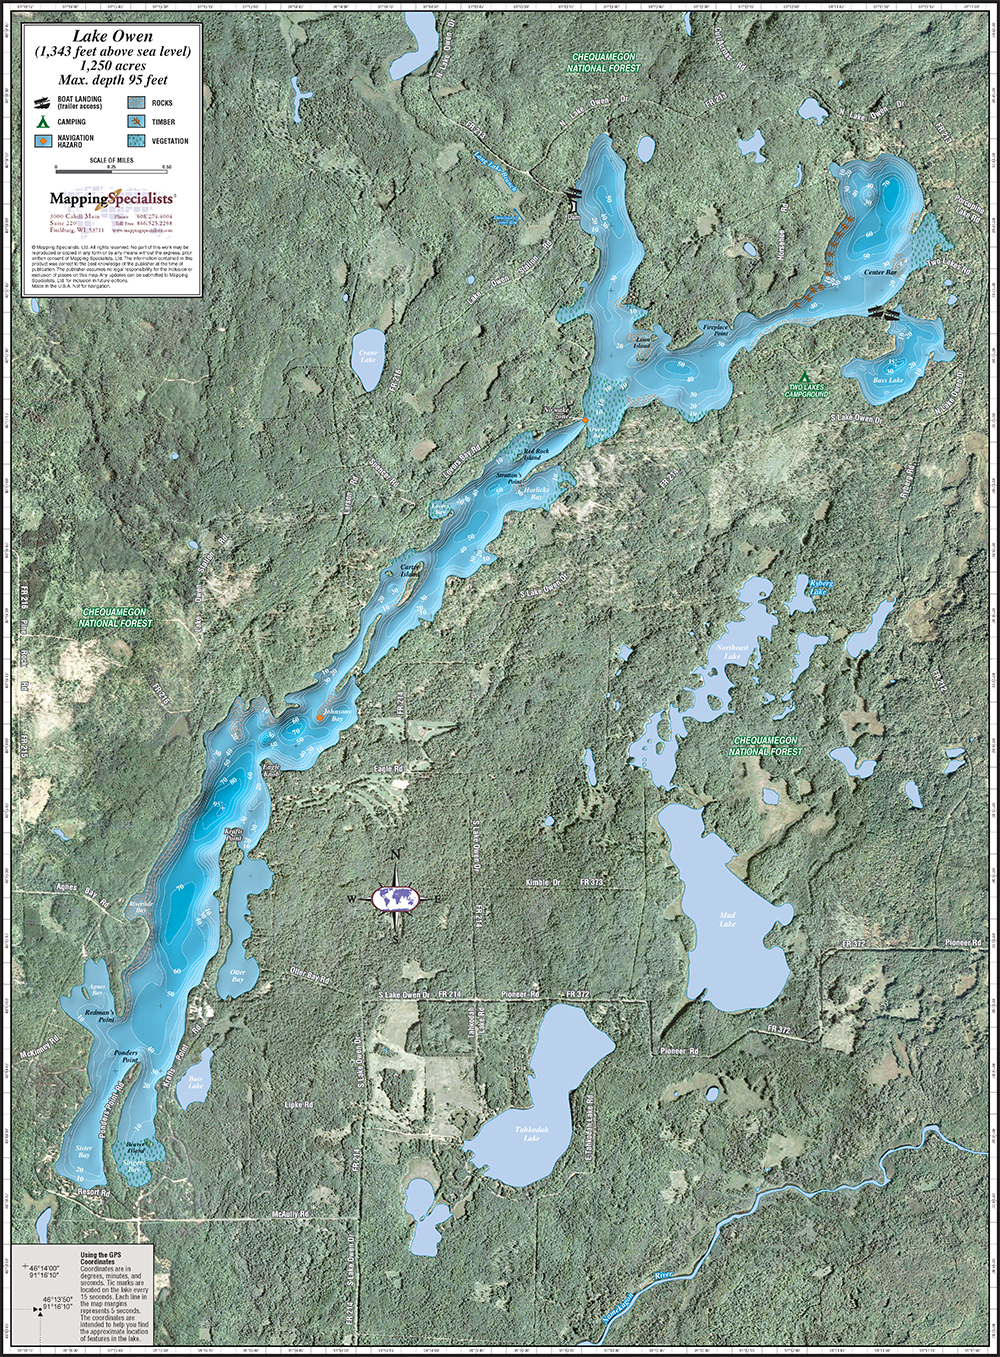 Lake Owen Enhanced Wall Map